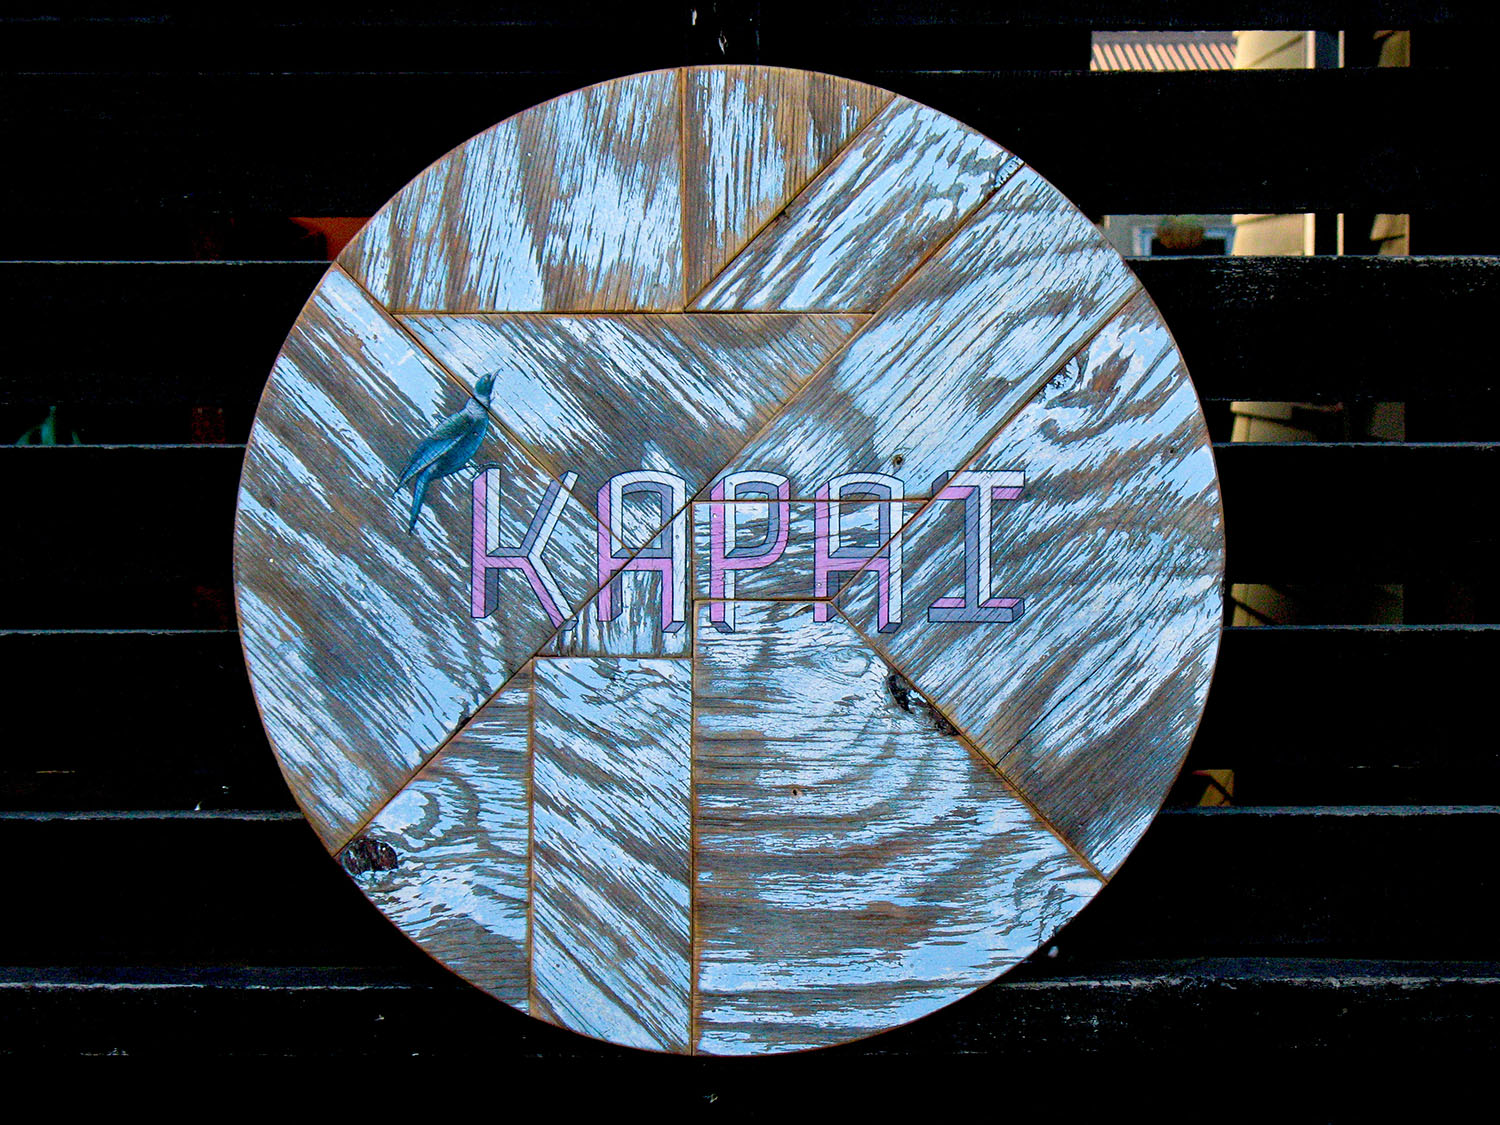 Kapai-Rust-round-artwork-by-Tony-Harrington